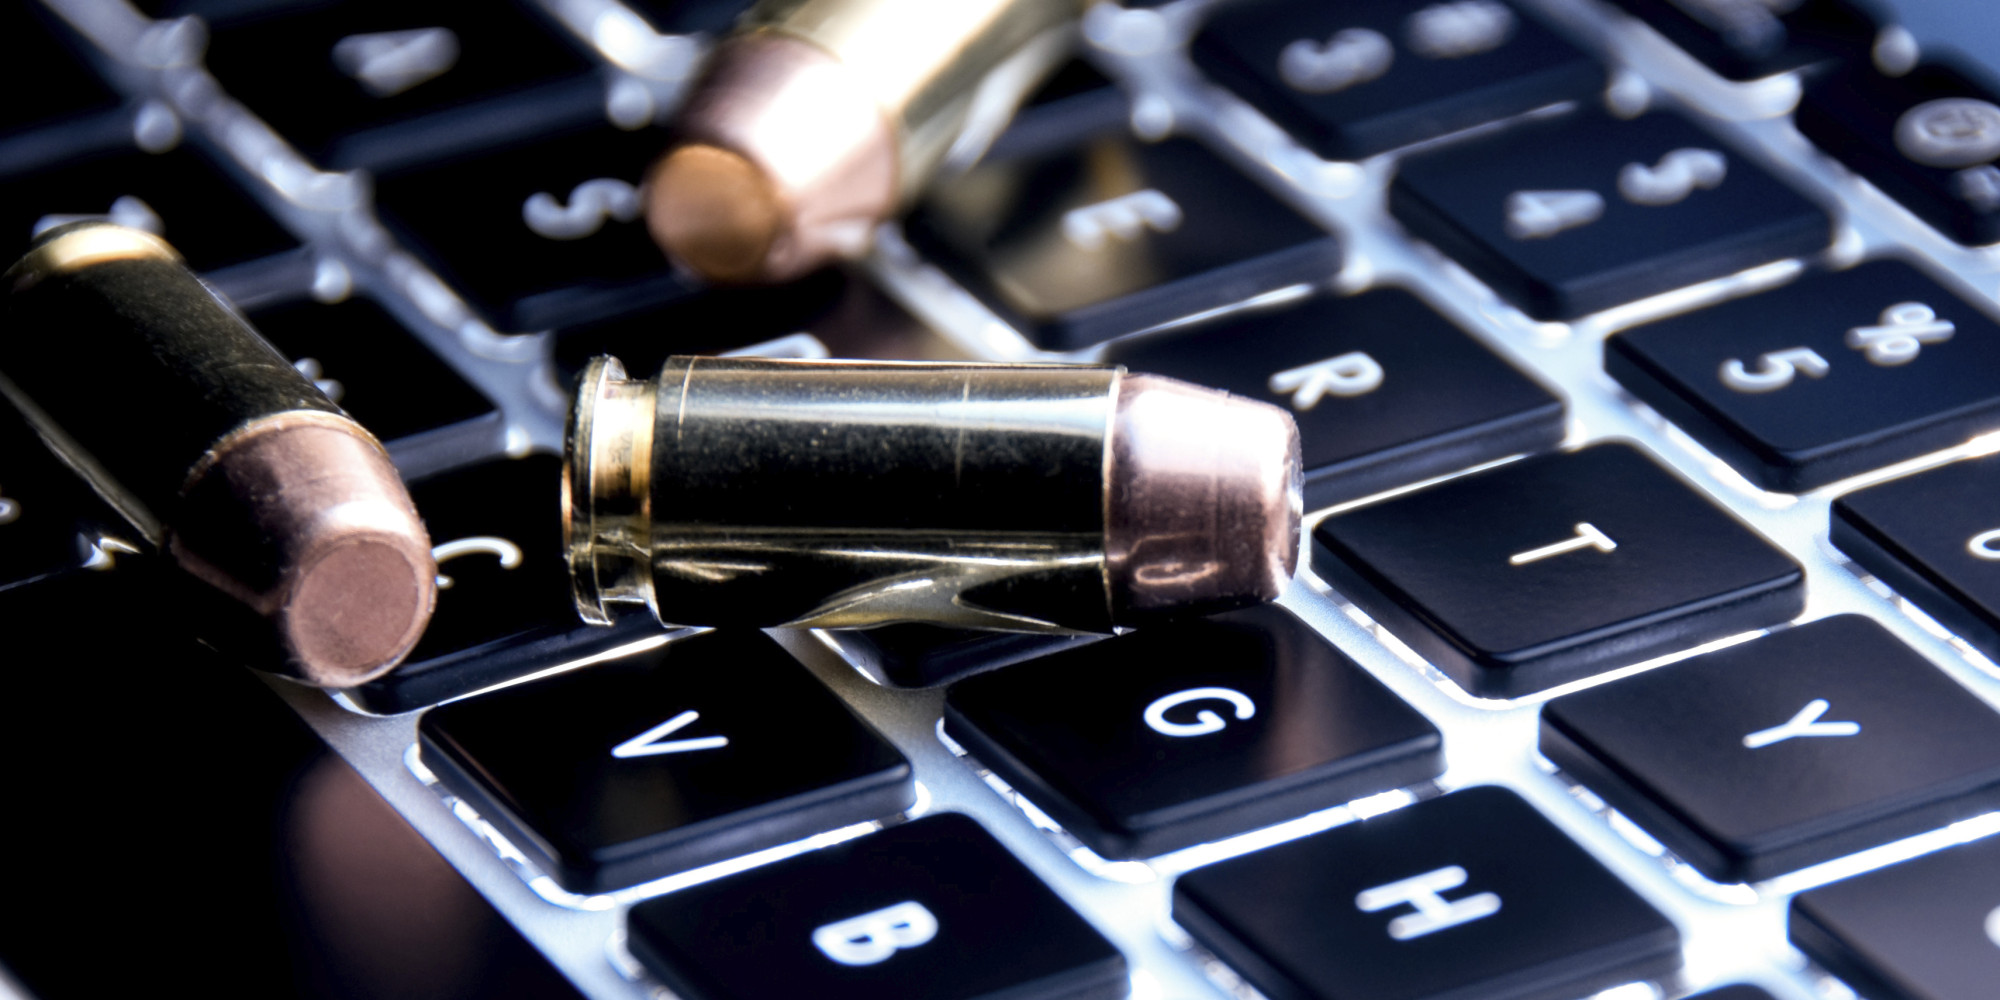 Cyber Regulation – A number of of The Latest Cyber Legal guidelines Are to Shield Companies